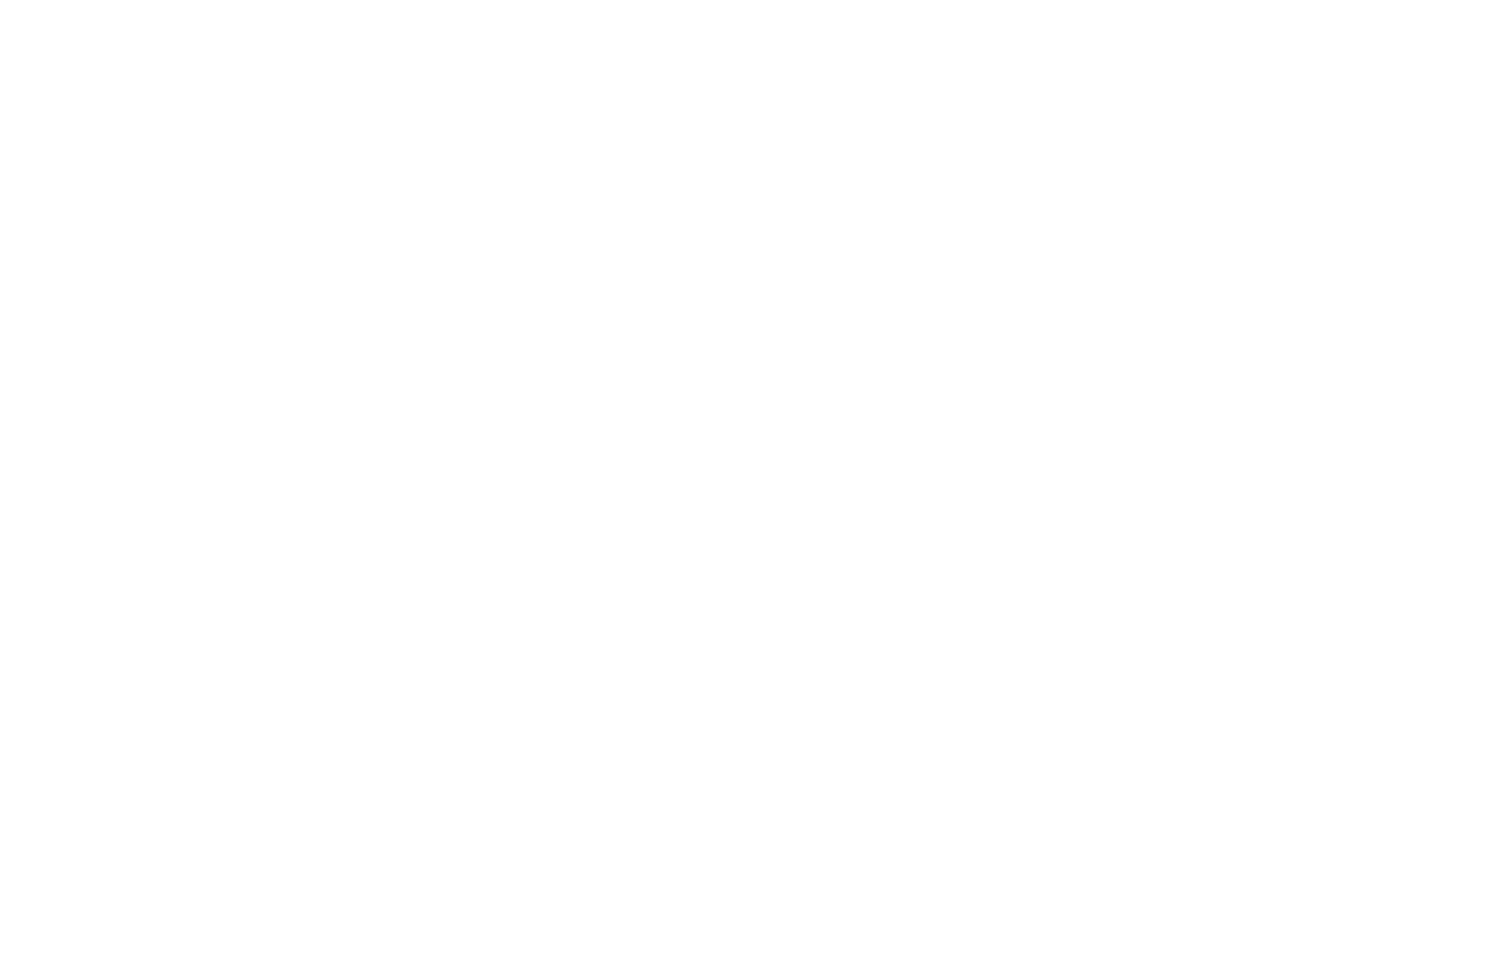 KT Photography